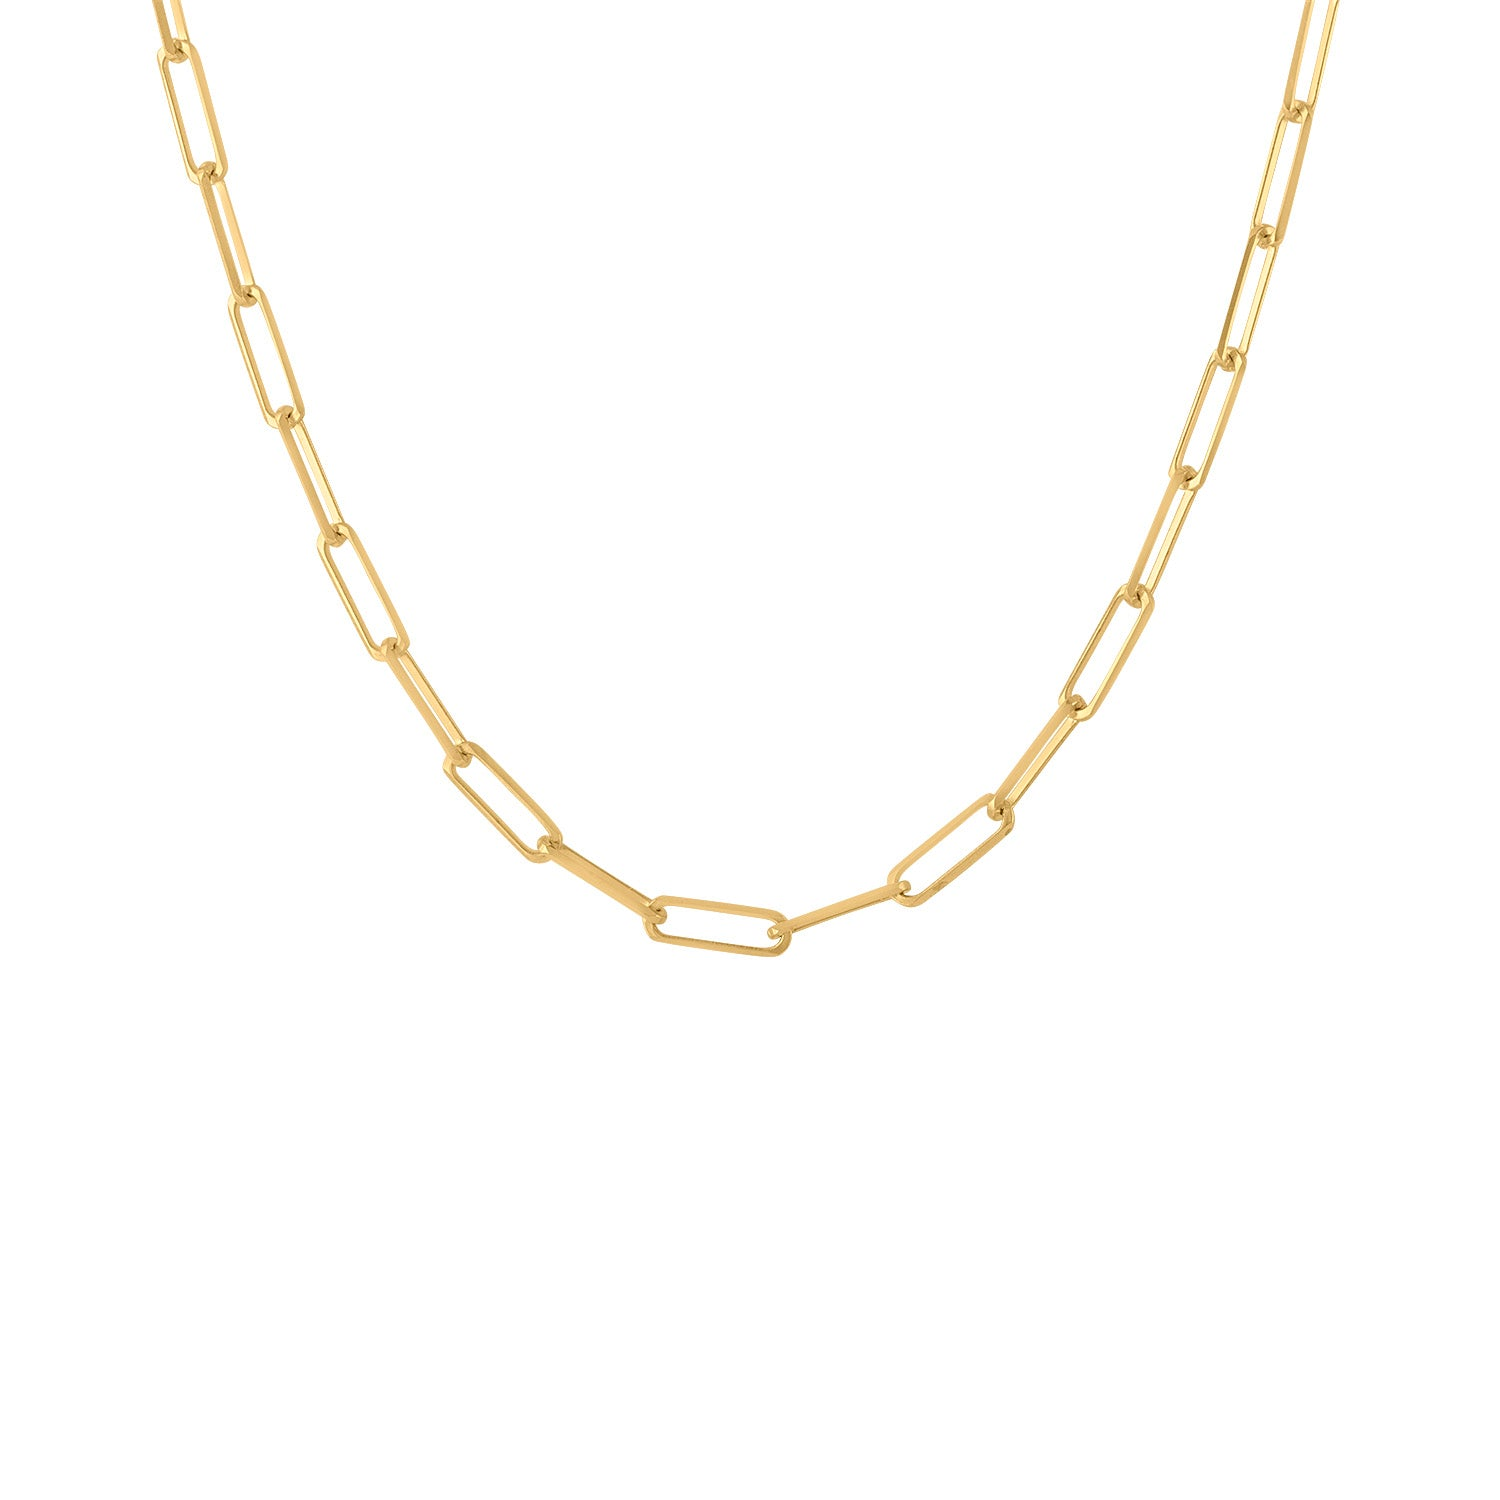 14KT YELLOW GOLD 32